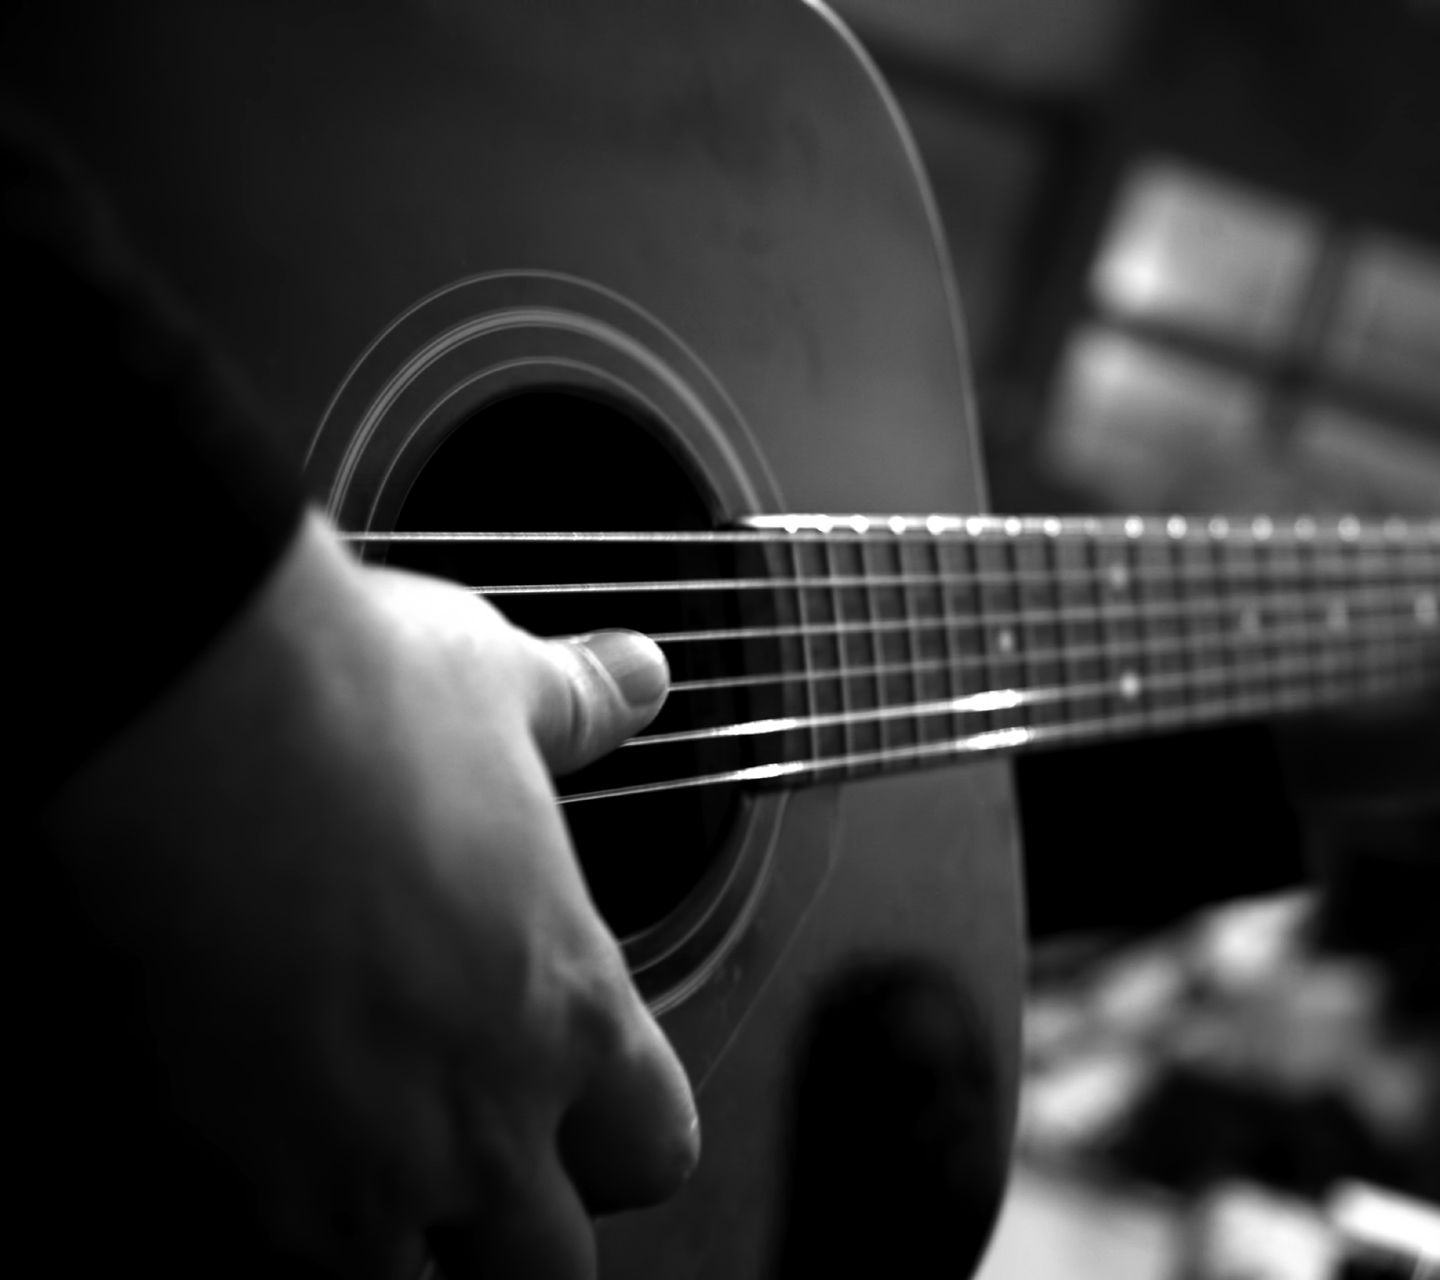 galaxy s3 wallpaper - guitar music - hd wallpapers - 9to5wallpapers